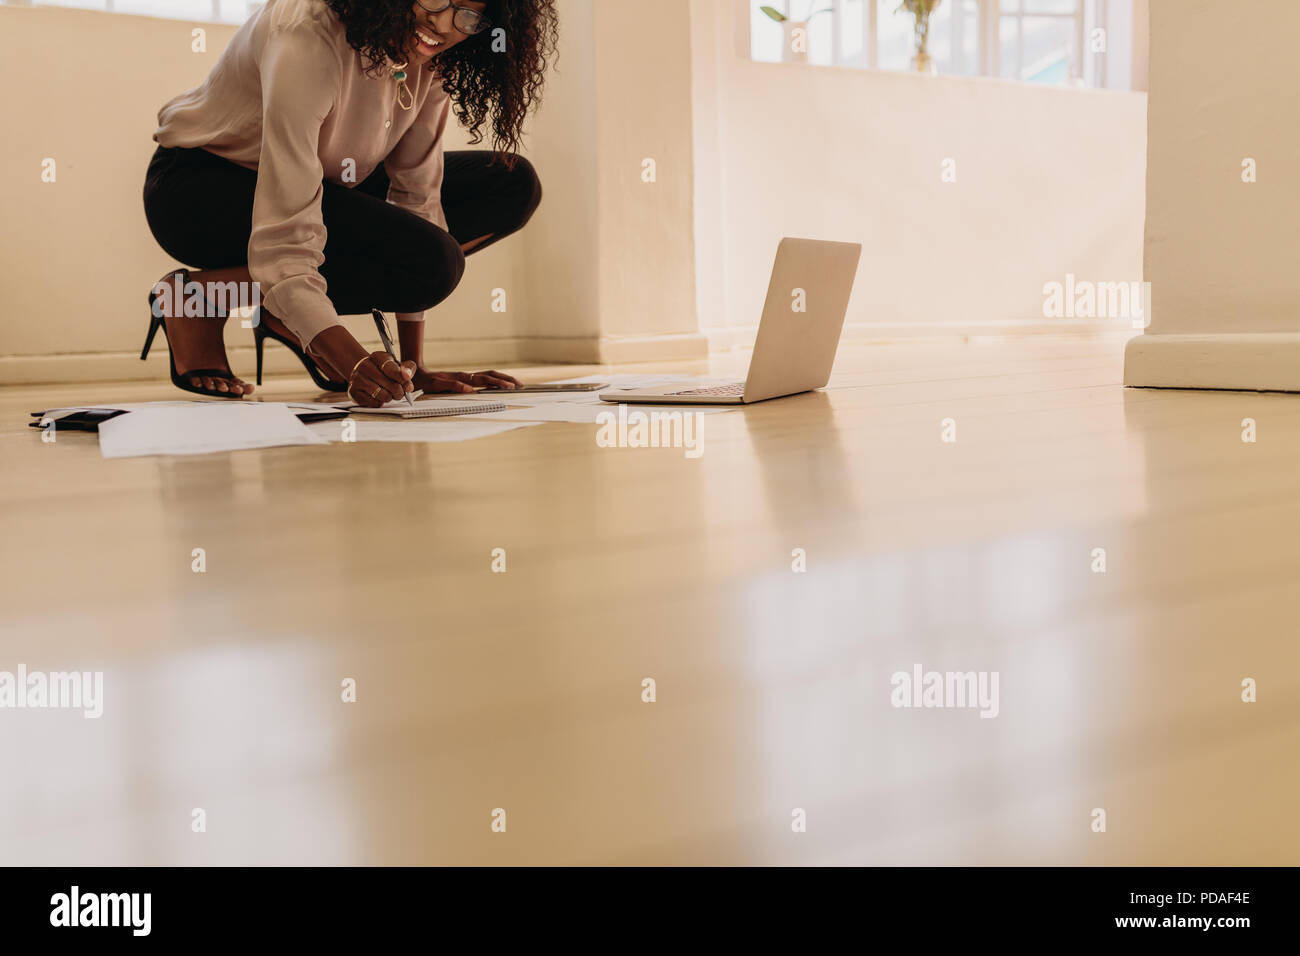 Woman entrepreneur in formal attire making notes while working on laptop computer at home. Businesswoman sitting on floor wearing sandals at home maki - Stock Image